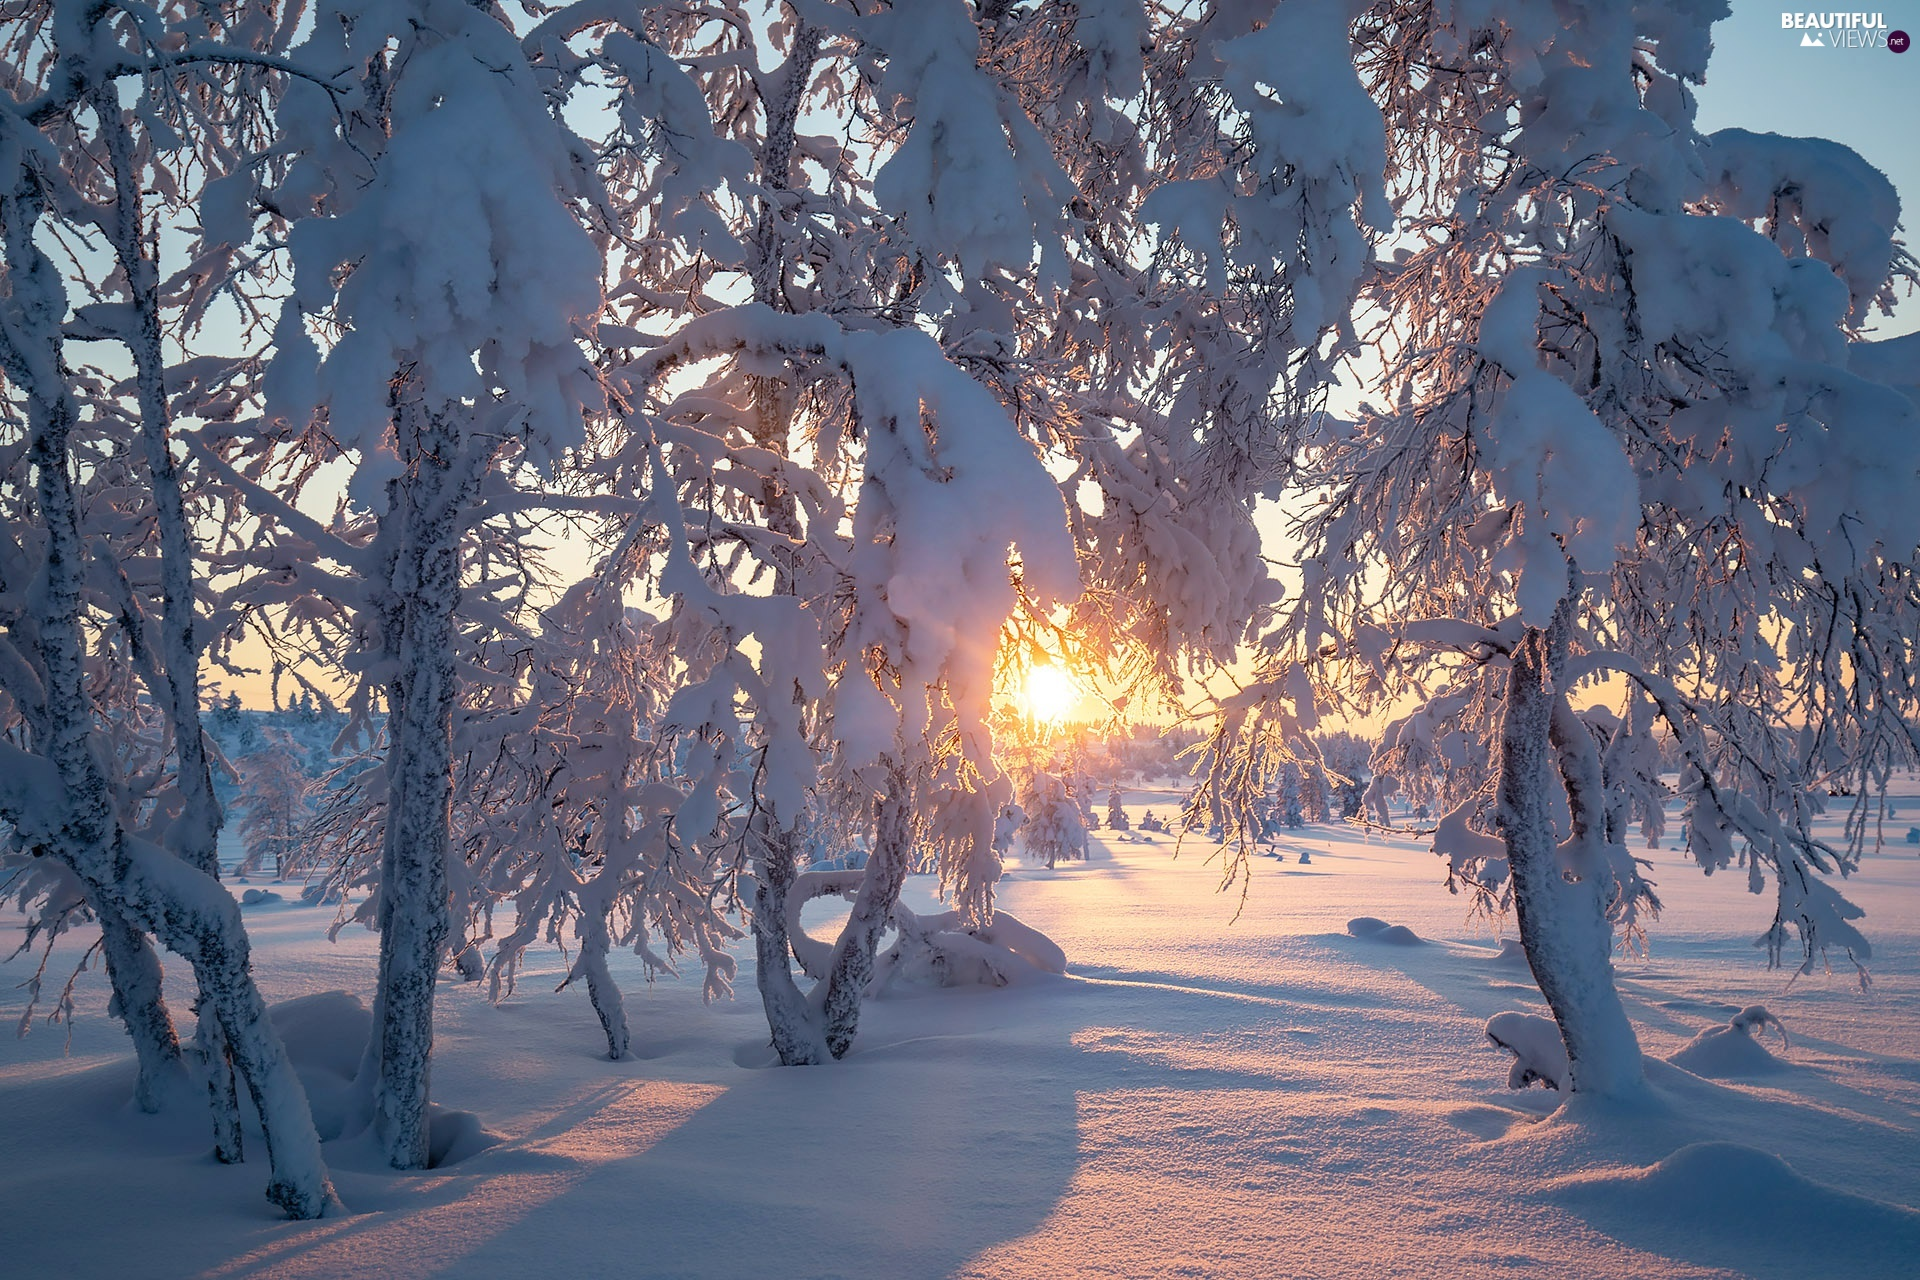 viewes, winter, Snowy, trees, Sunrise